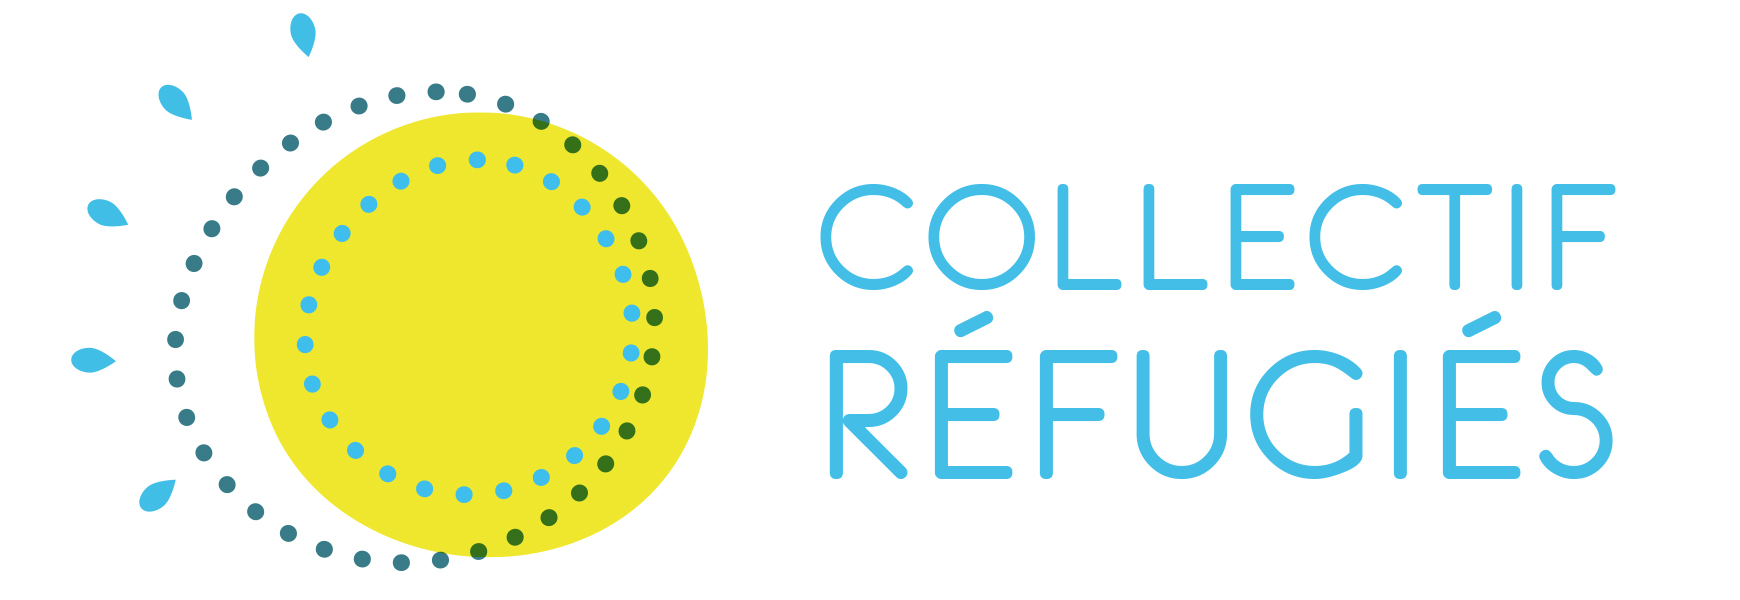 COLLECTIF REFUGIES